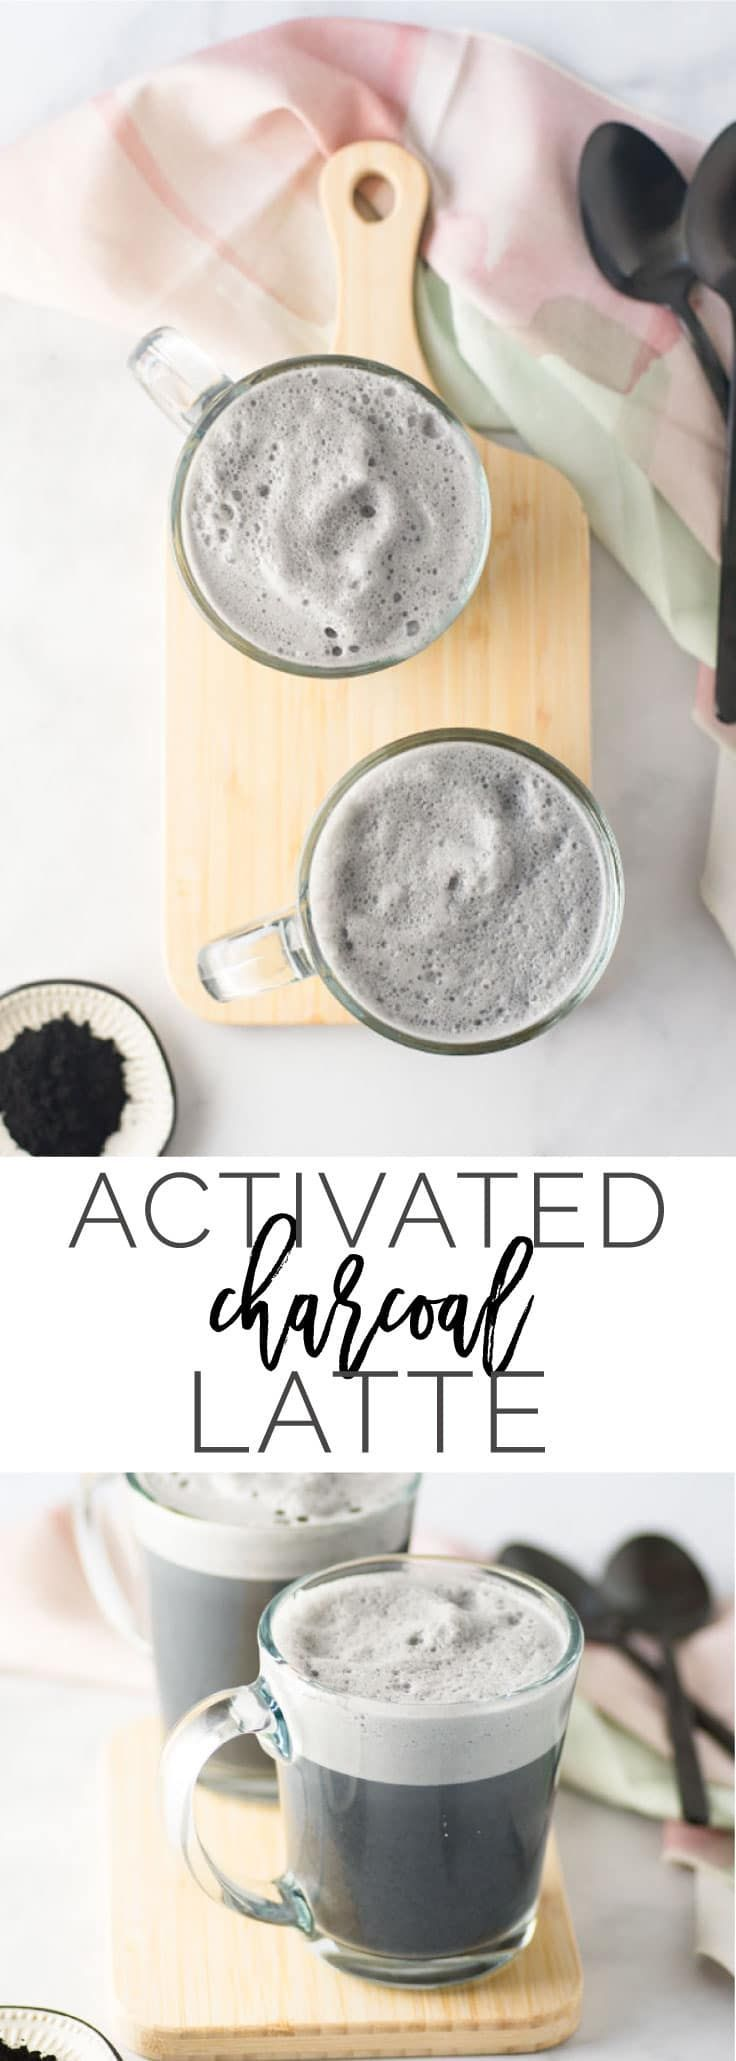 Charcoal Latte -- Let your inner-goth squeal with this black charcoal latte! It's all you need to detox and feel great. Activated charcoal has amazing benefits for the inside and out and when paired with almond milk, makes a delicious and healthy beverage! - mindfulavocado